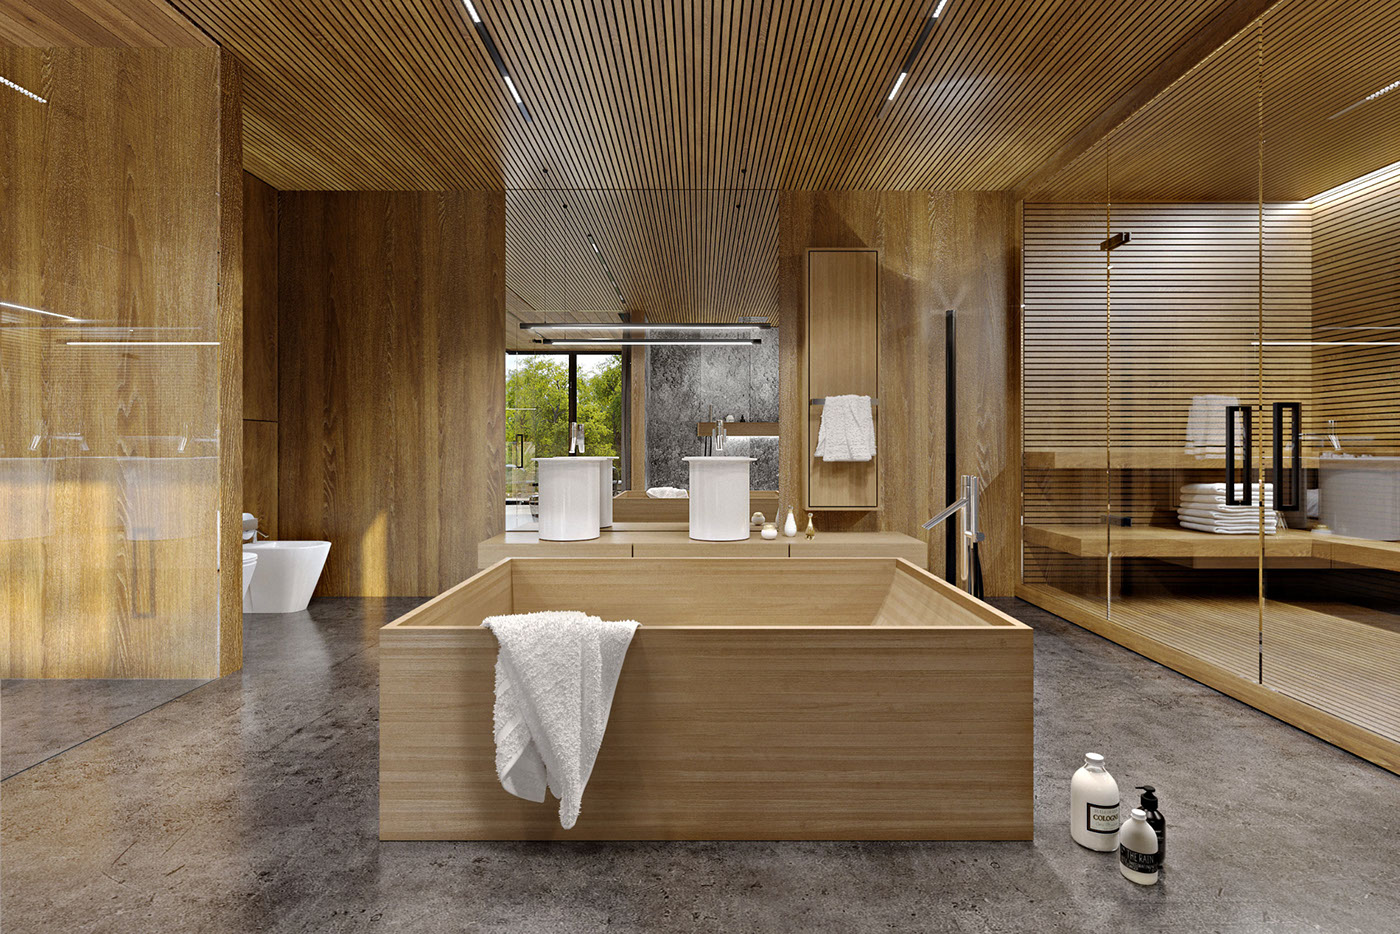 The designers also added a steam room fully clad with oak, too